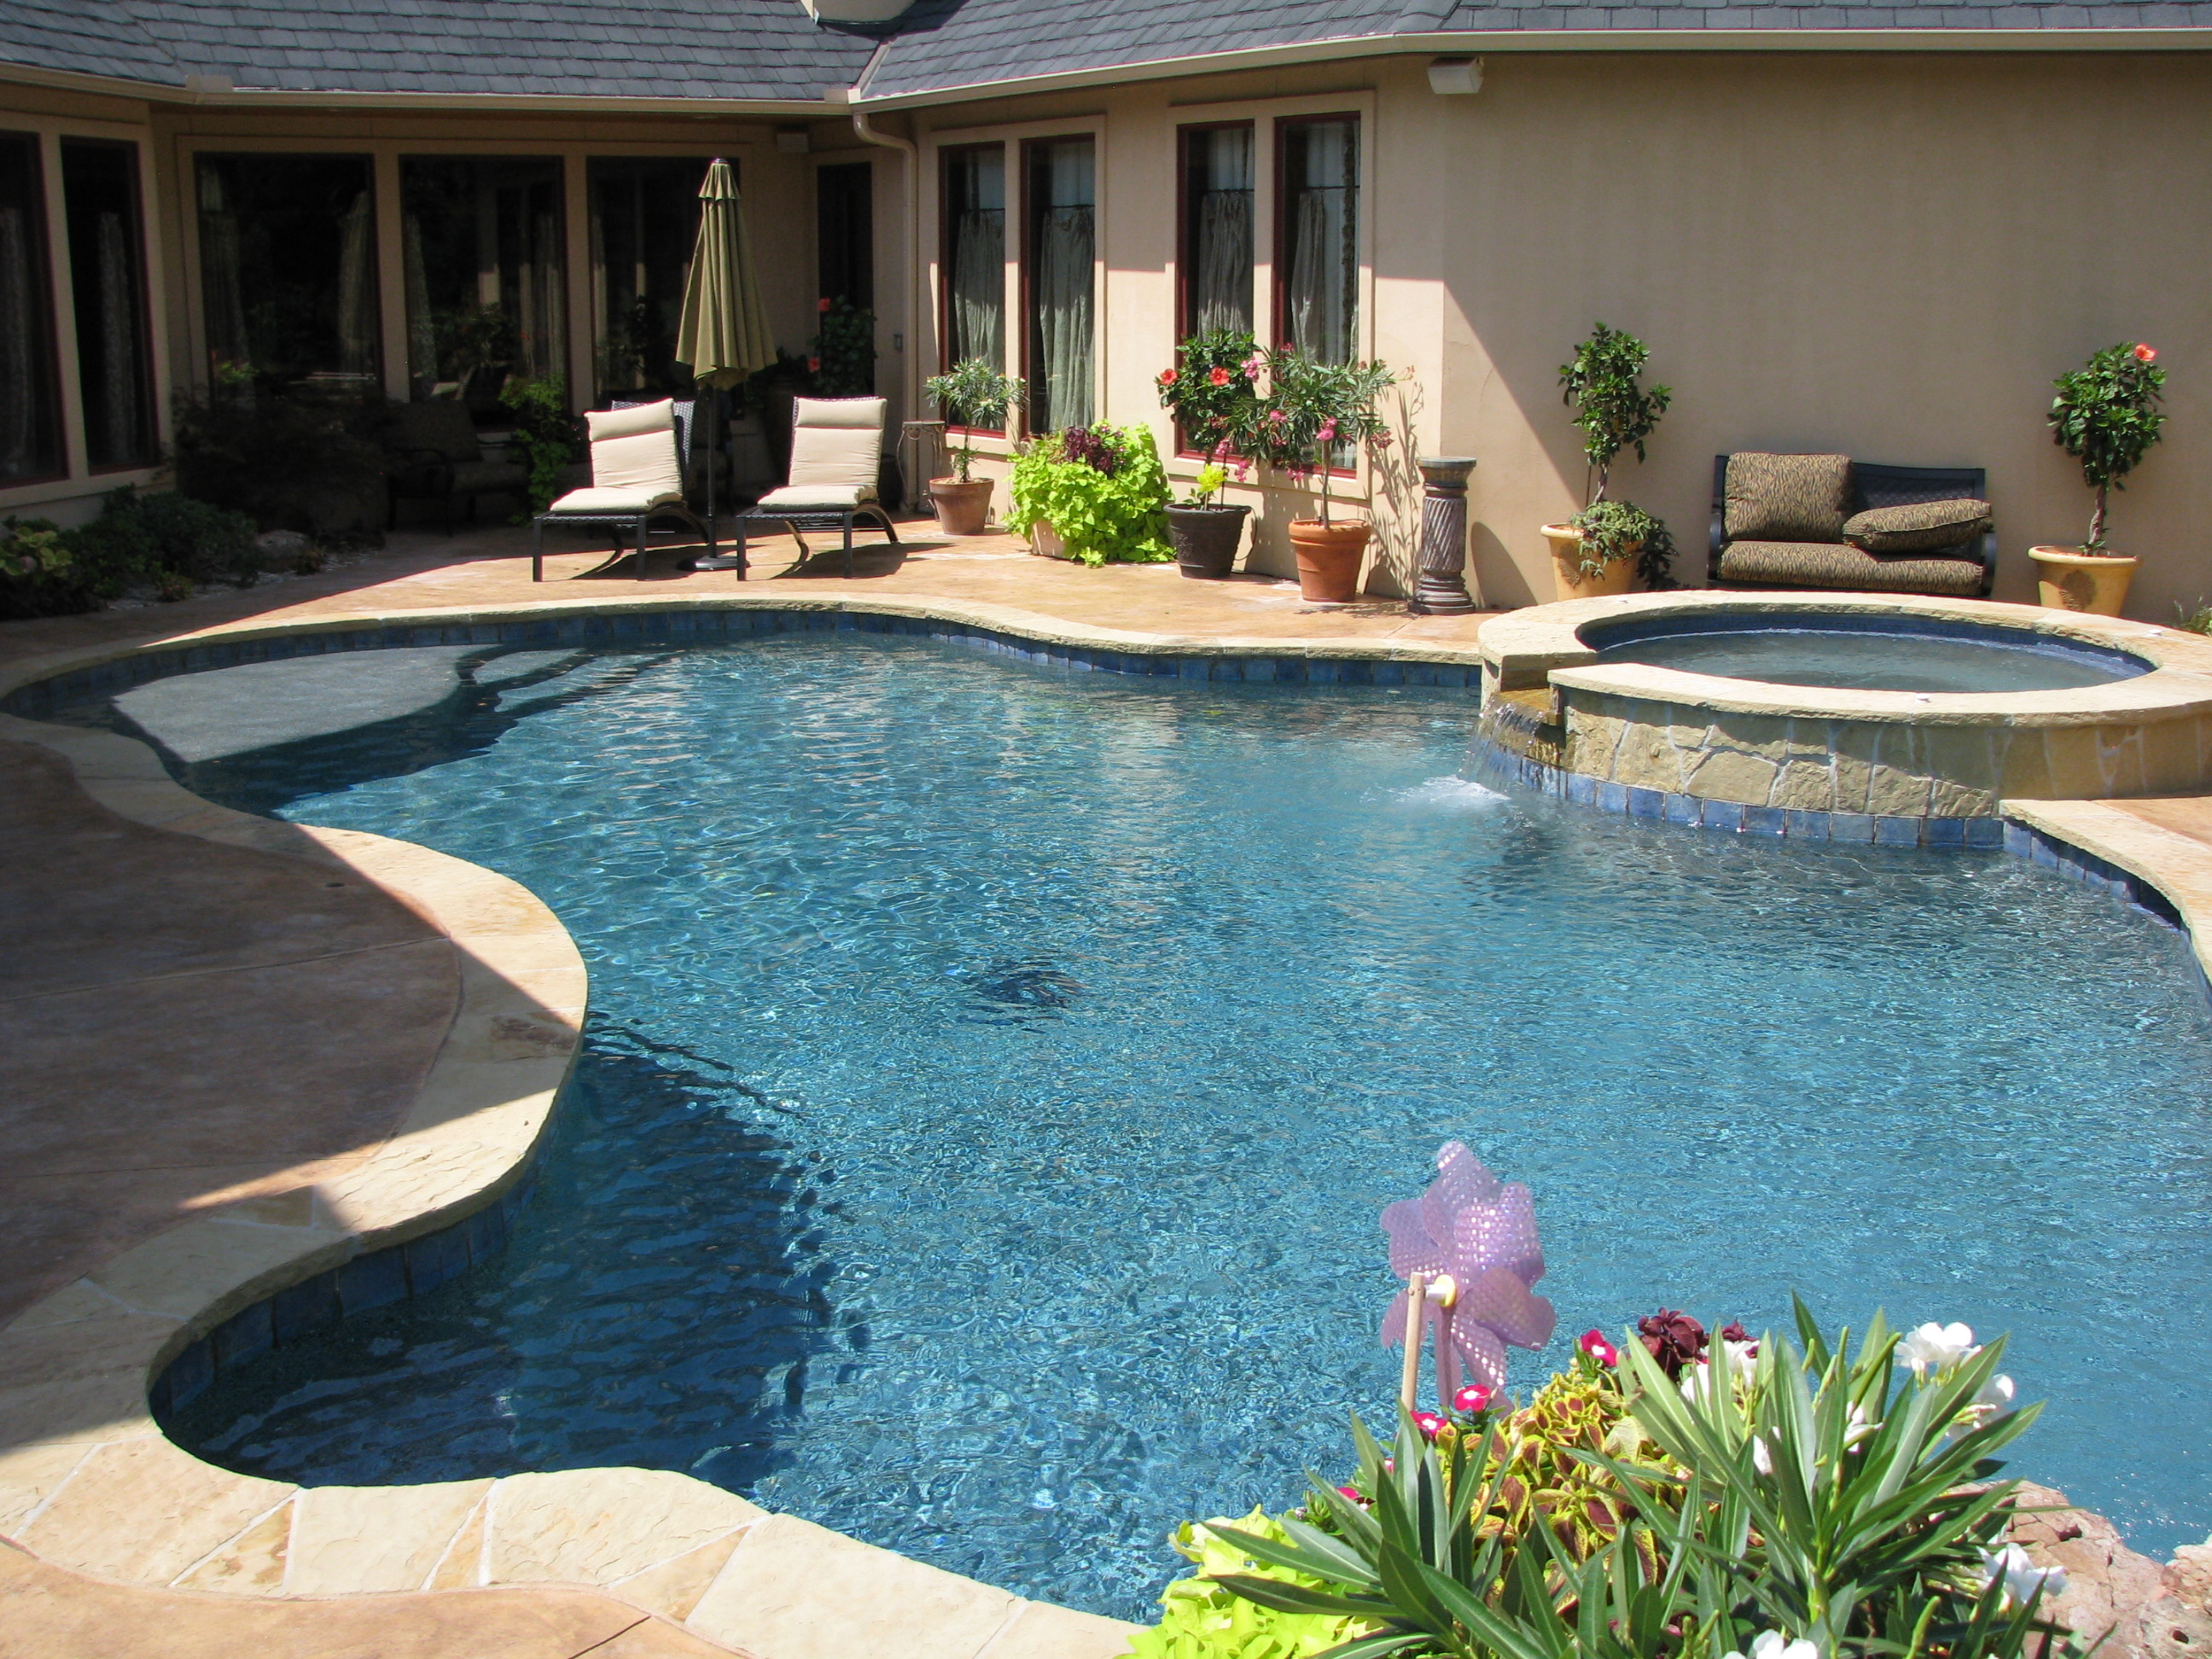 free form pools free form swimming pool designs. beautiful ideas. Home Design Ideas